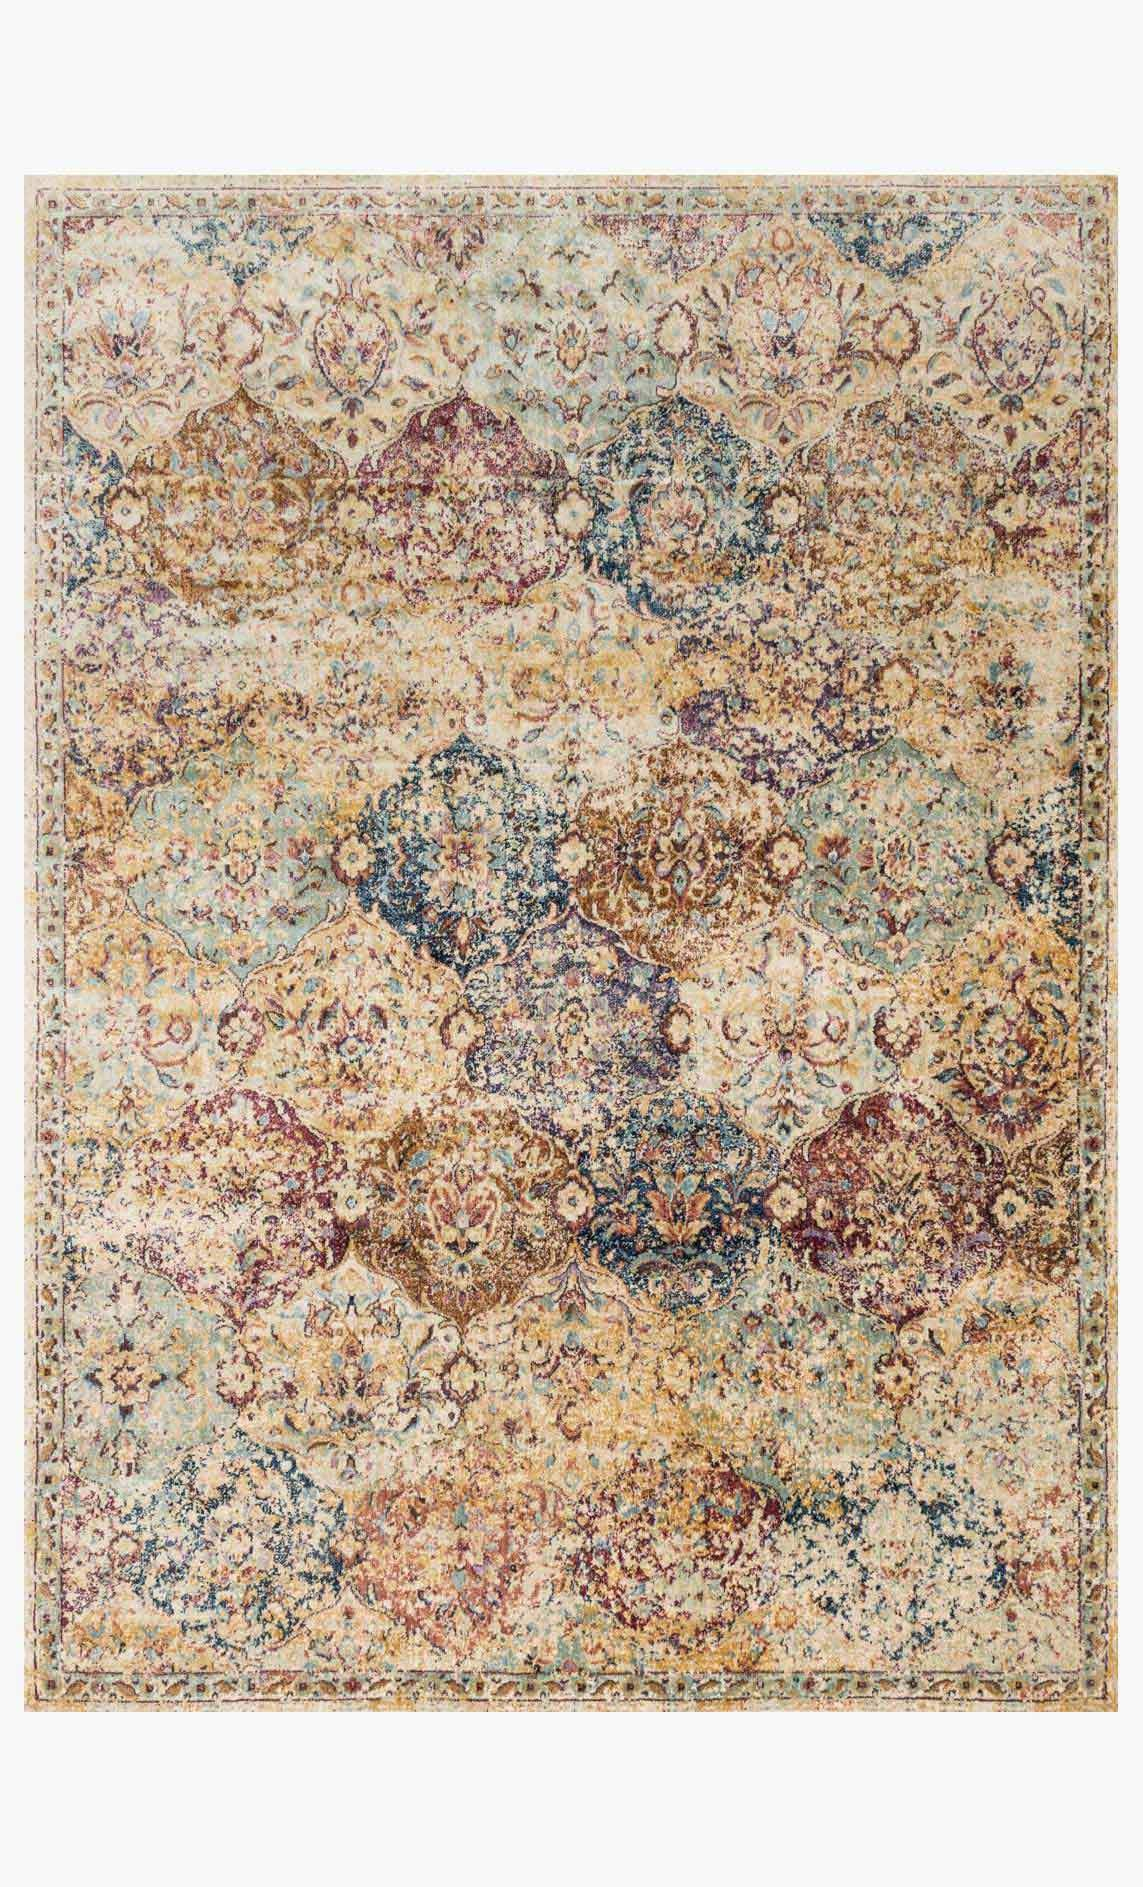 Rectangle loloi Rugs area rugs Anastasia Area Rugs By Loloi Rugs AF-12 Ivory-Multi in 15 Sizes